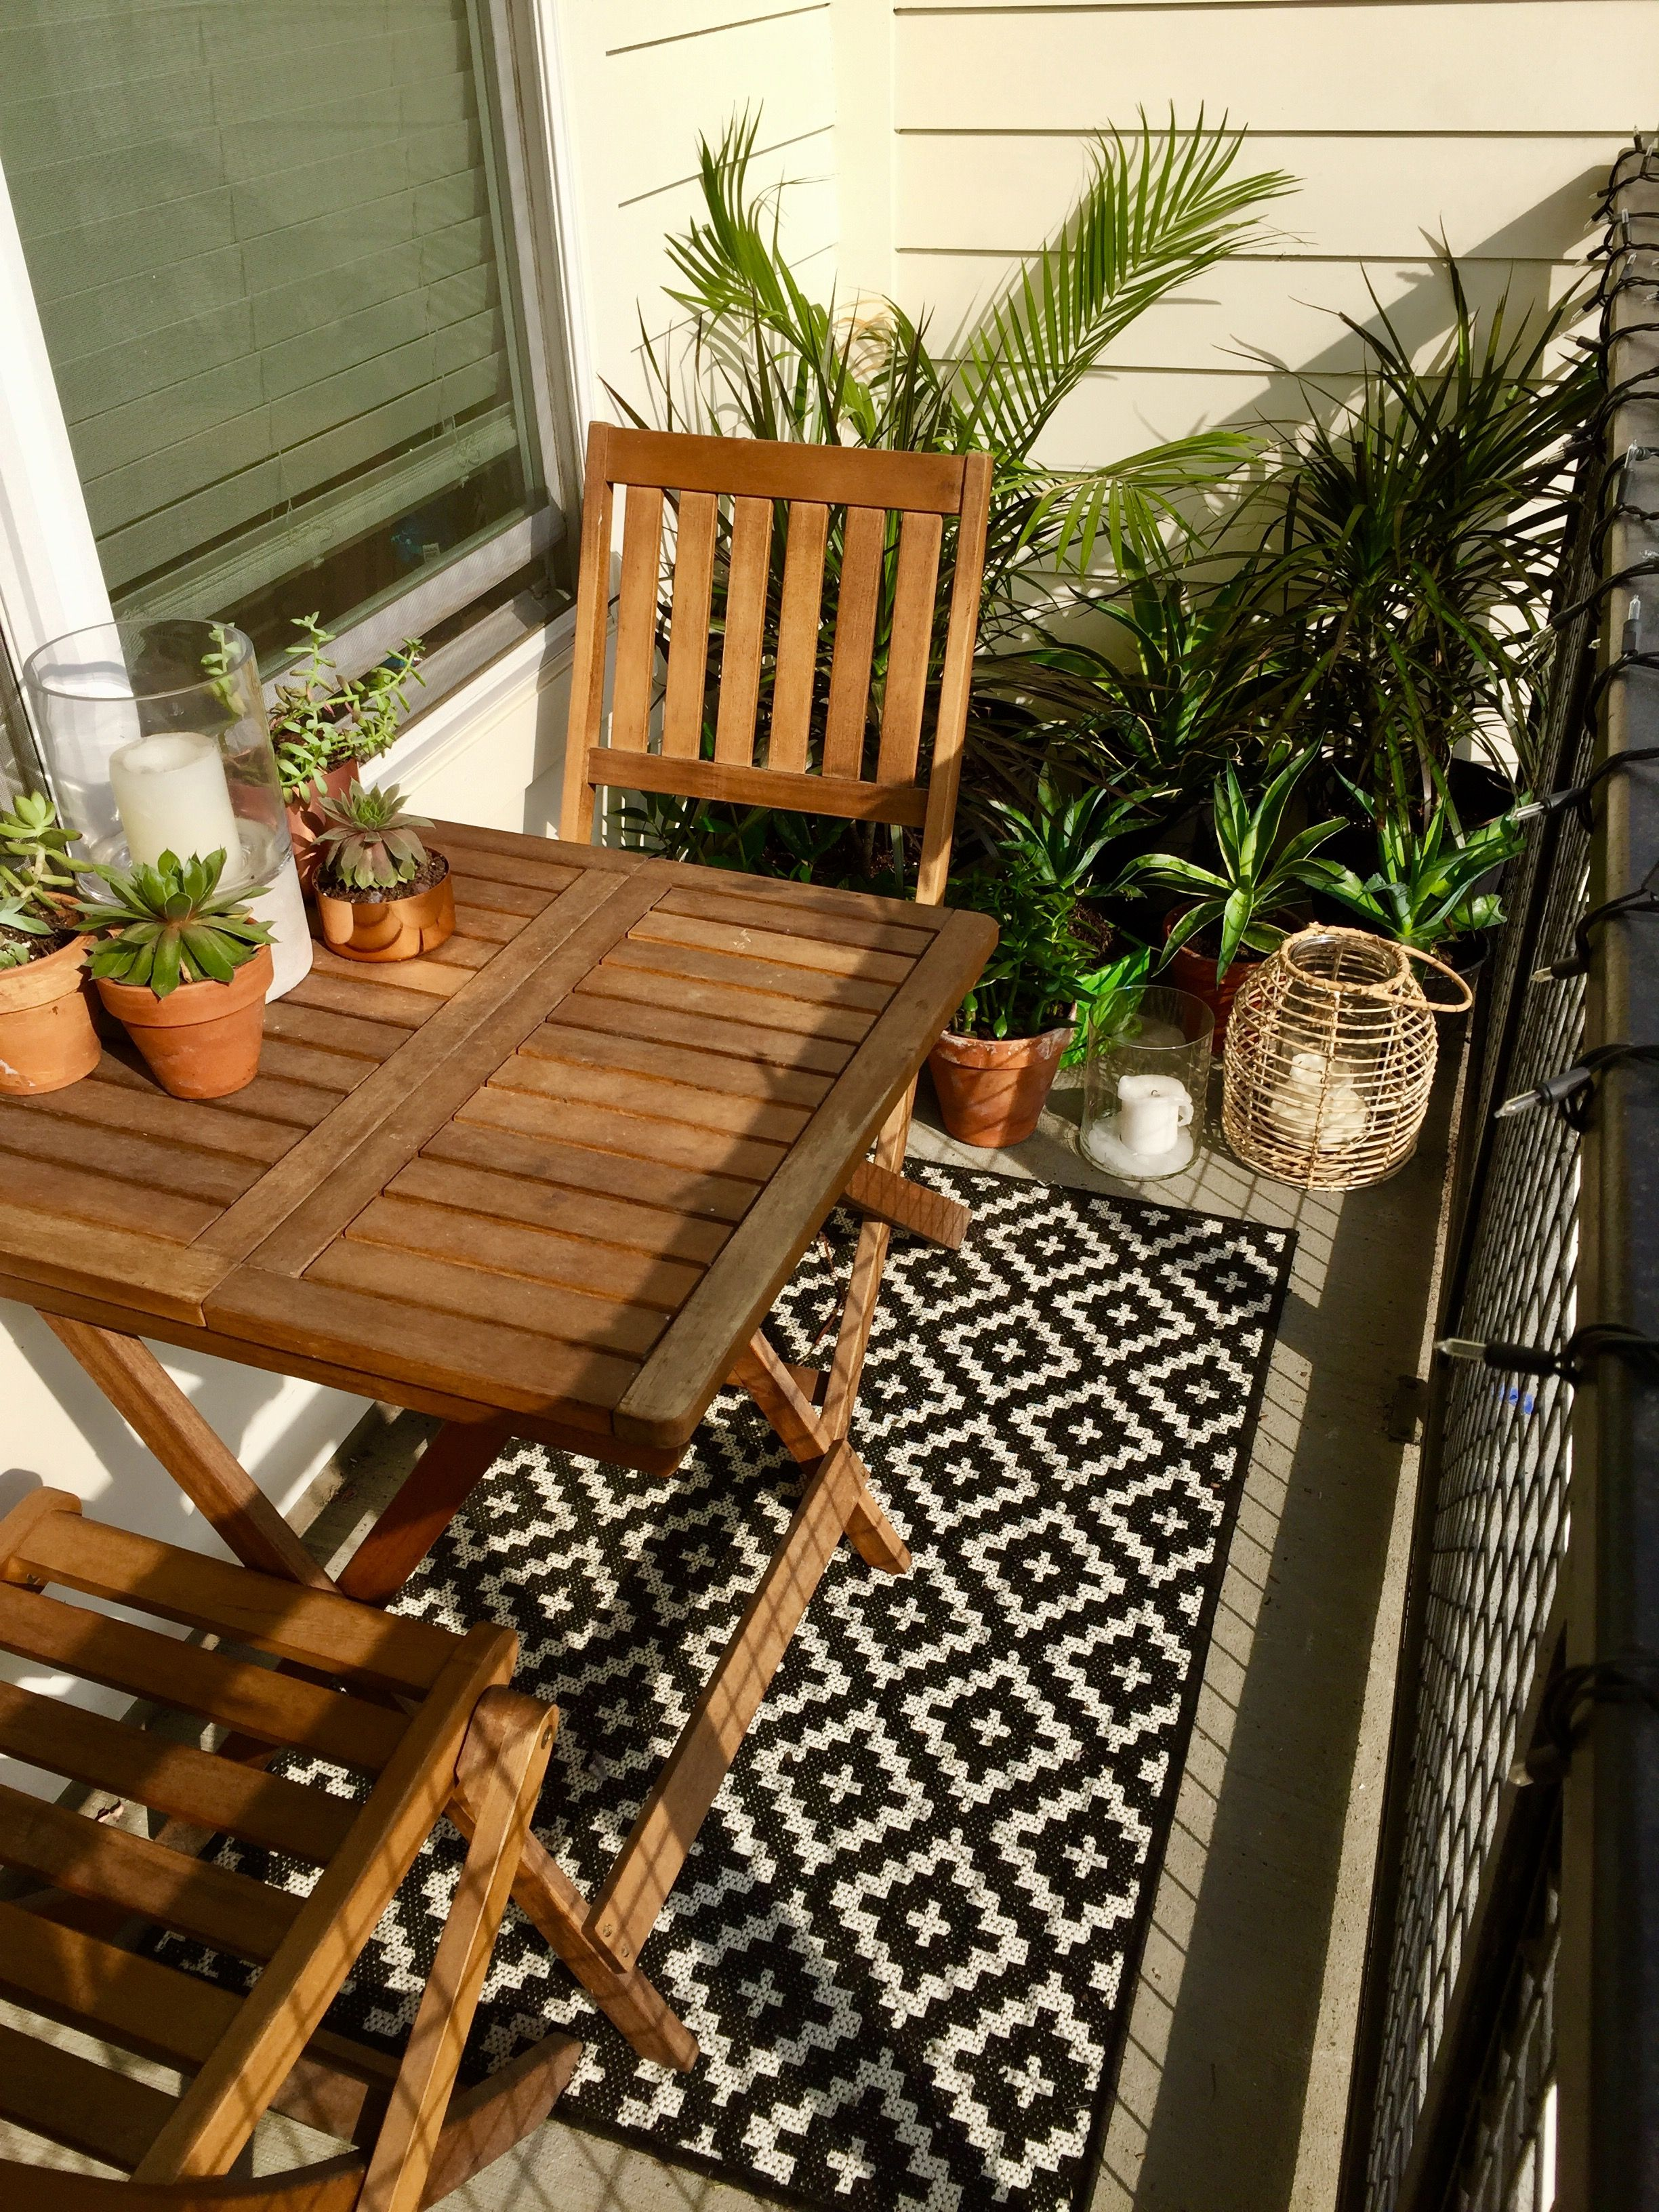 Small Apartment Balcony Garden Ideas: Pin By Sloansayswhat On Small Apartment Balcony Decor And